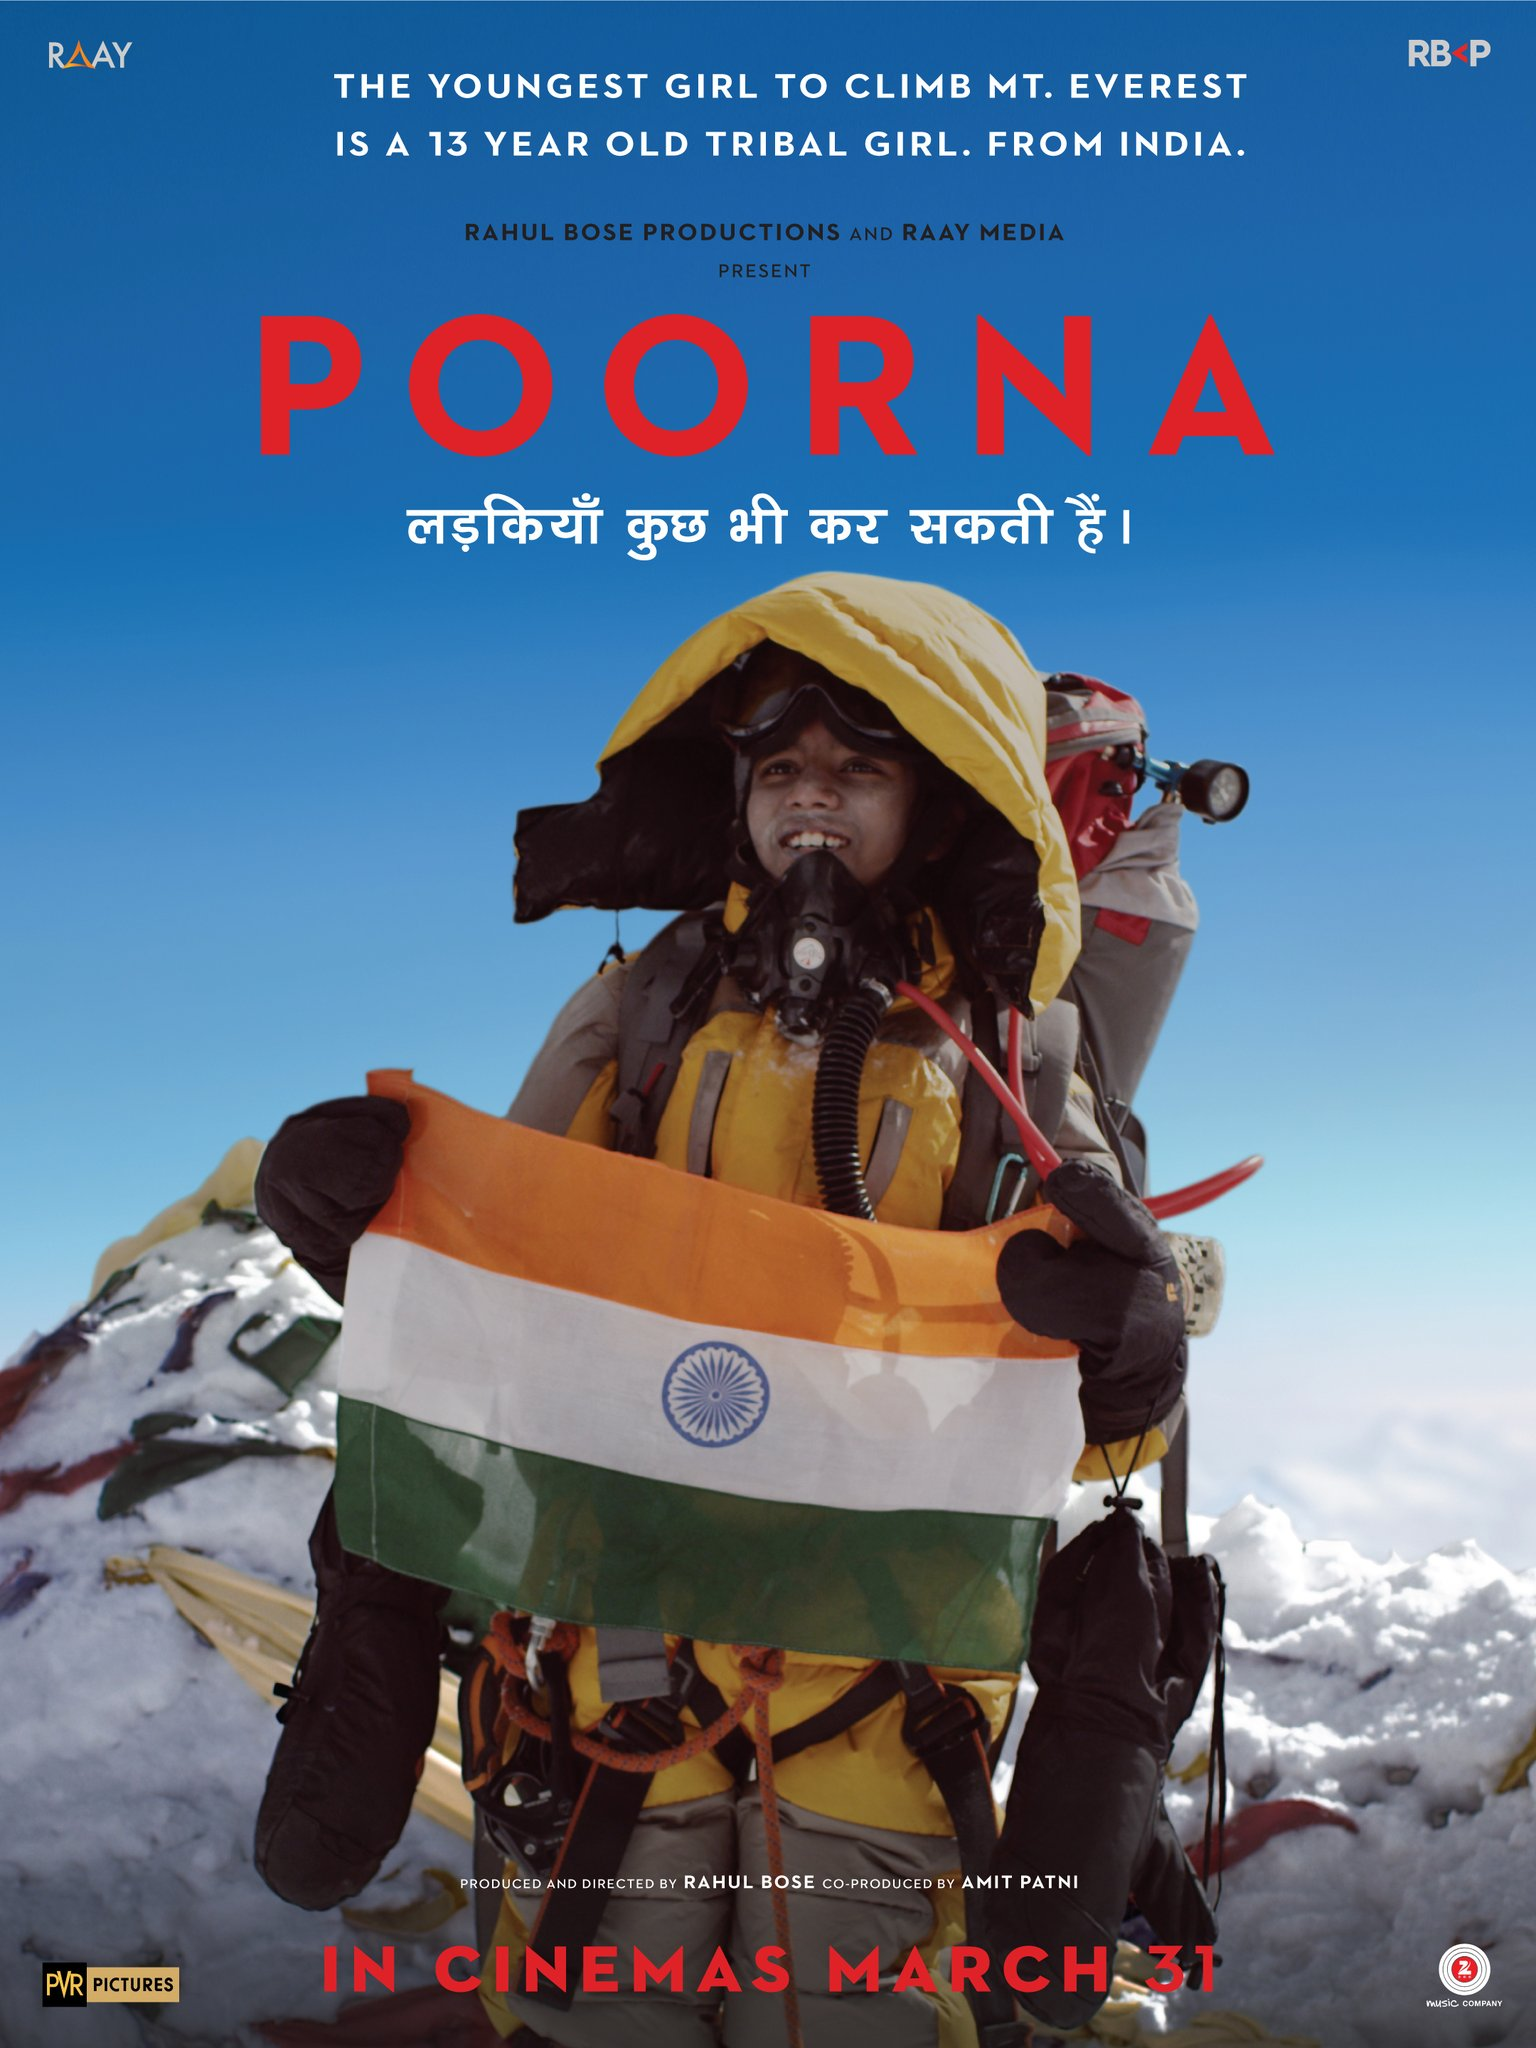 New Hindi Movei 2018 2019 Bolliwood: Poorna (2017) Movie Trailer, Cast And India Release Date